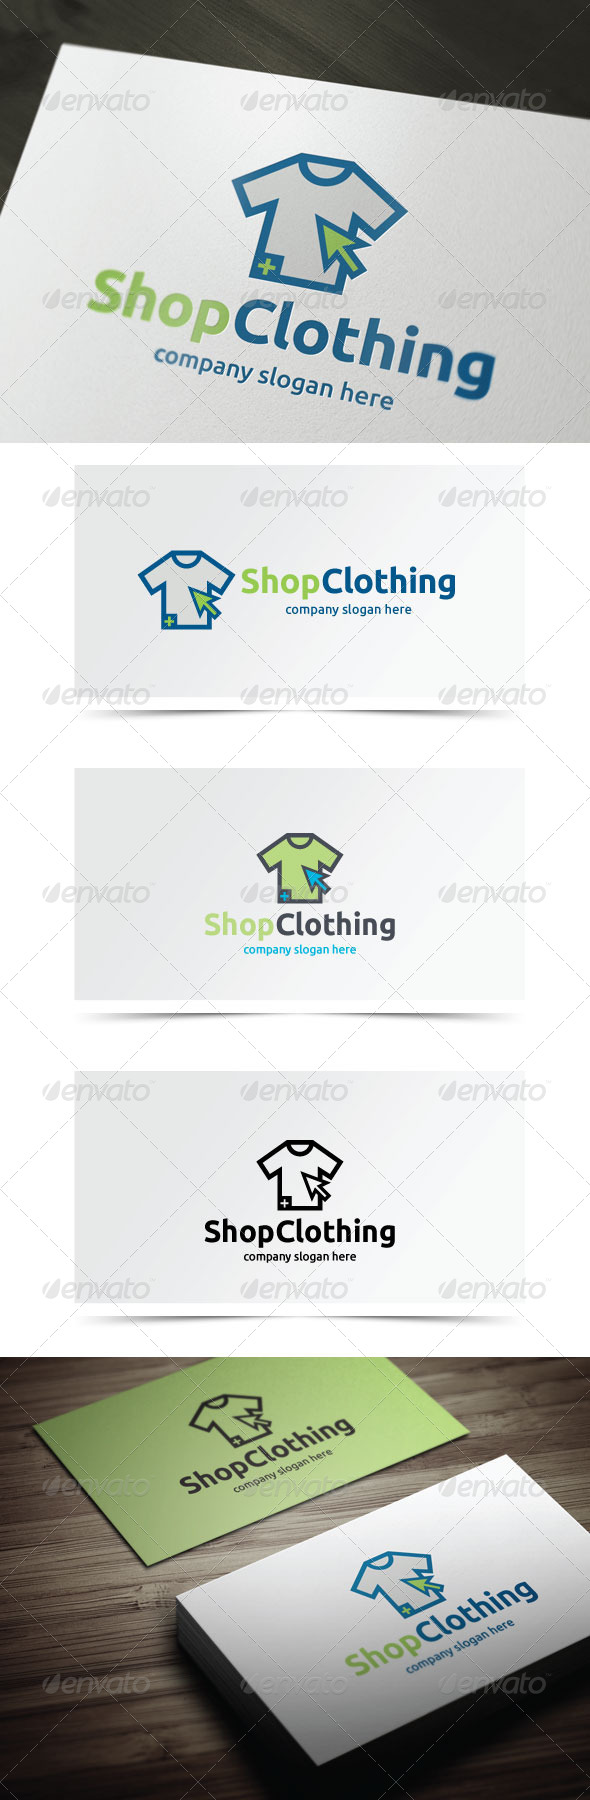 GraphicRiver Shop Clothing 5542401